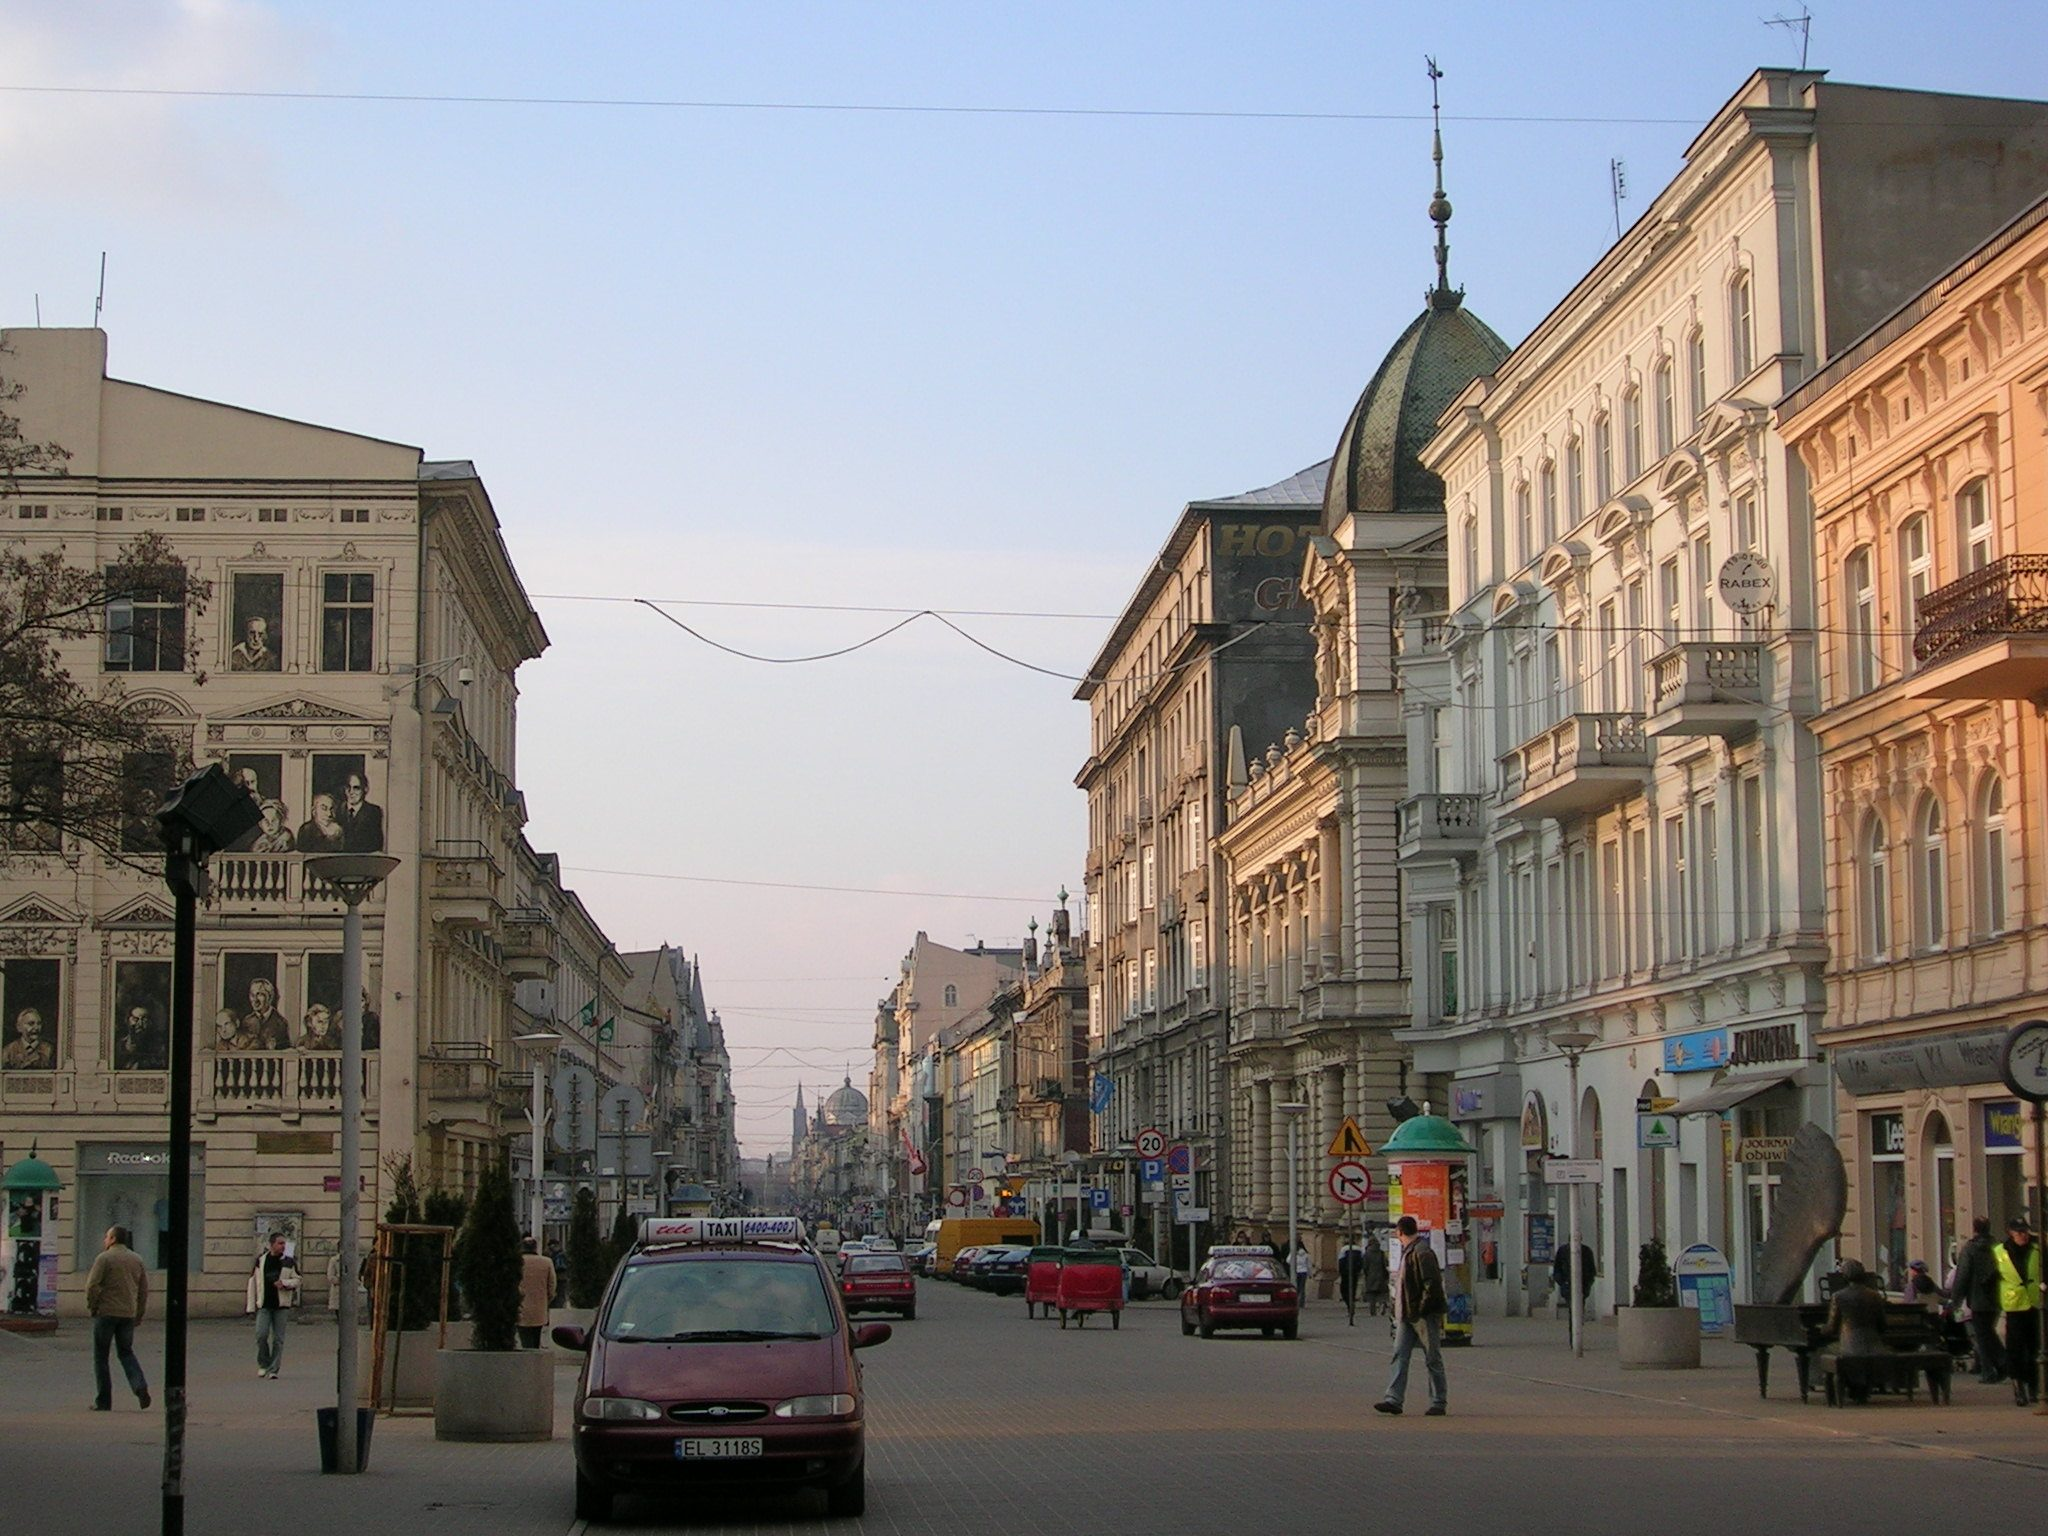 Lodz vs Wroclaw - difference in mentality of people?